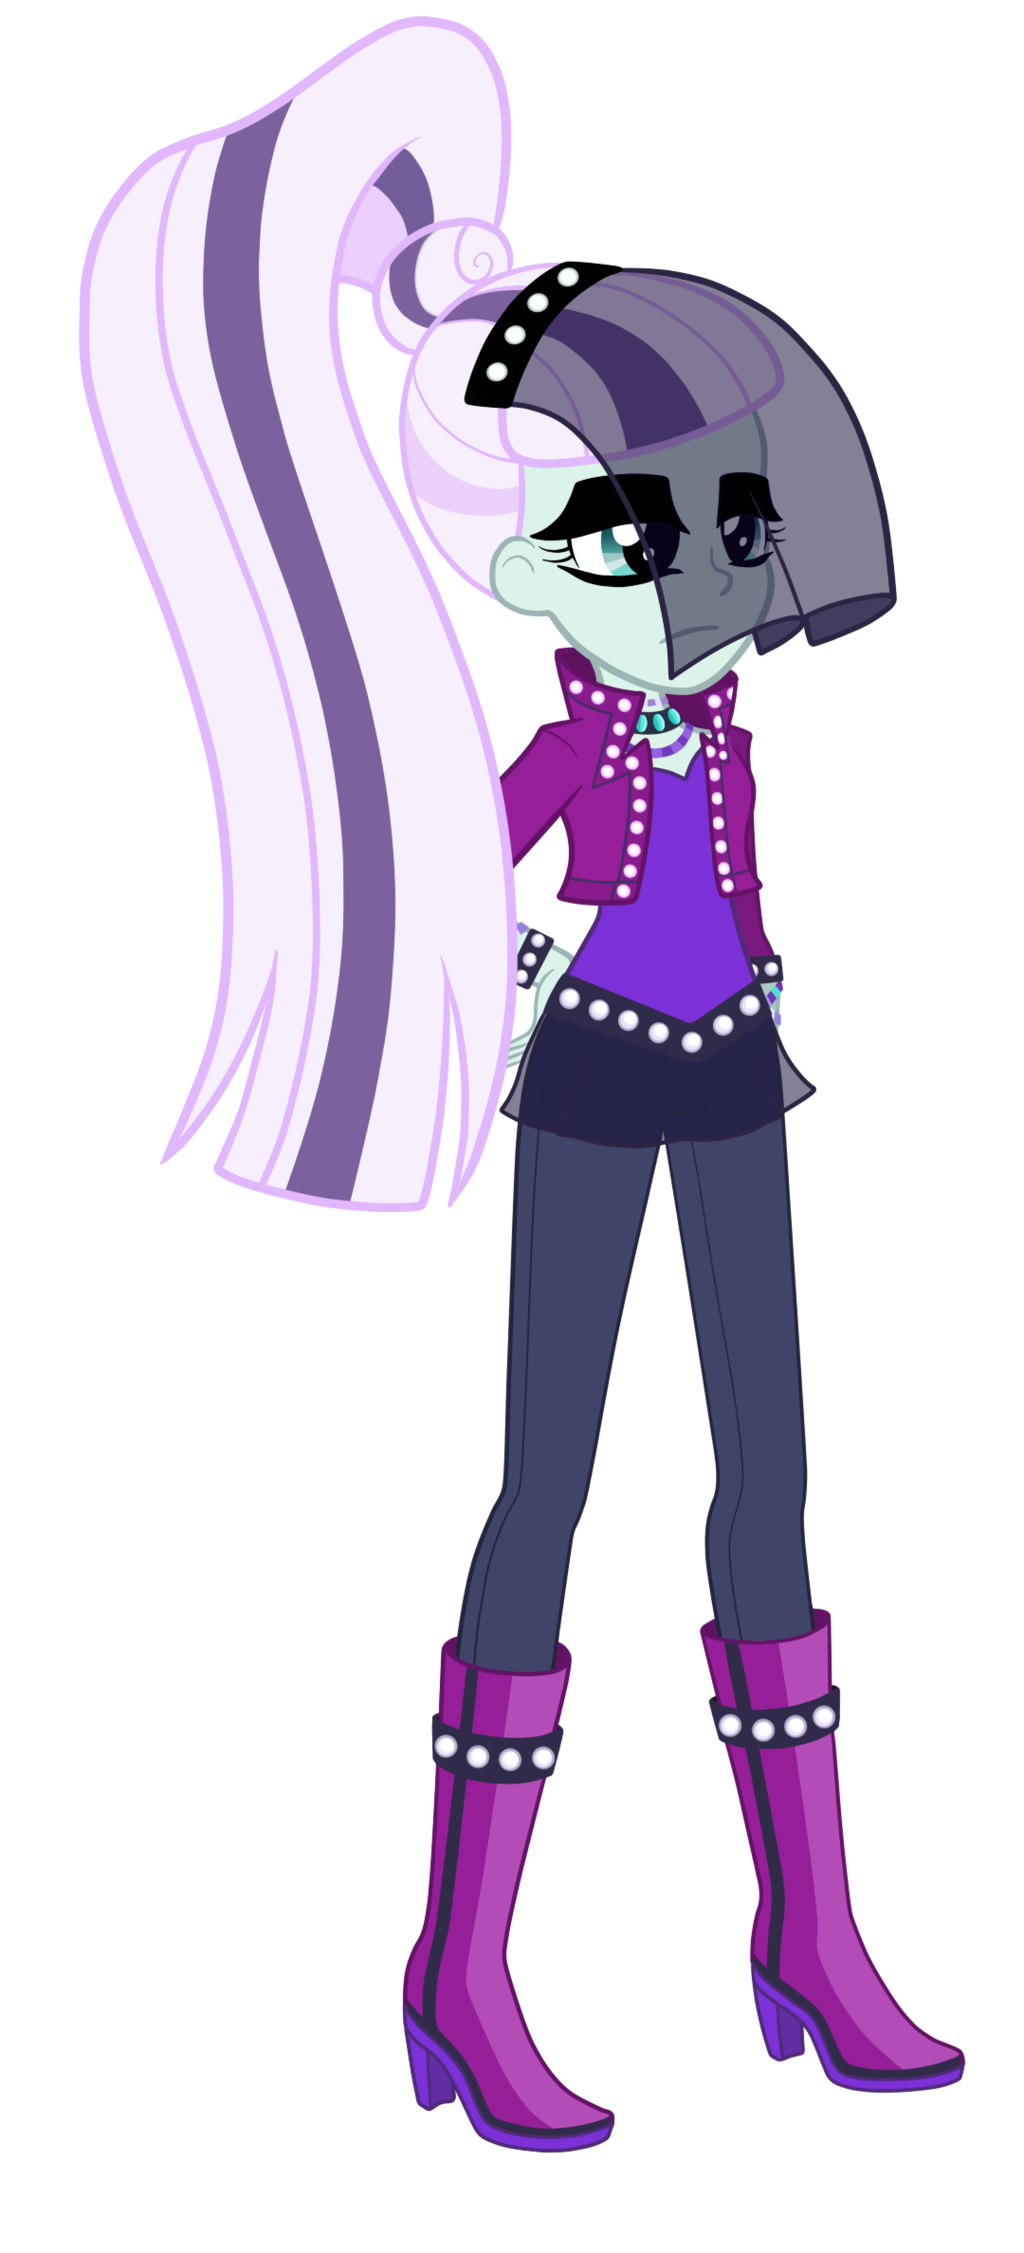 Equestria Girls Countess Coloratura By Thecheeseburger On